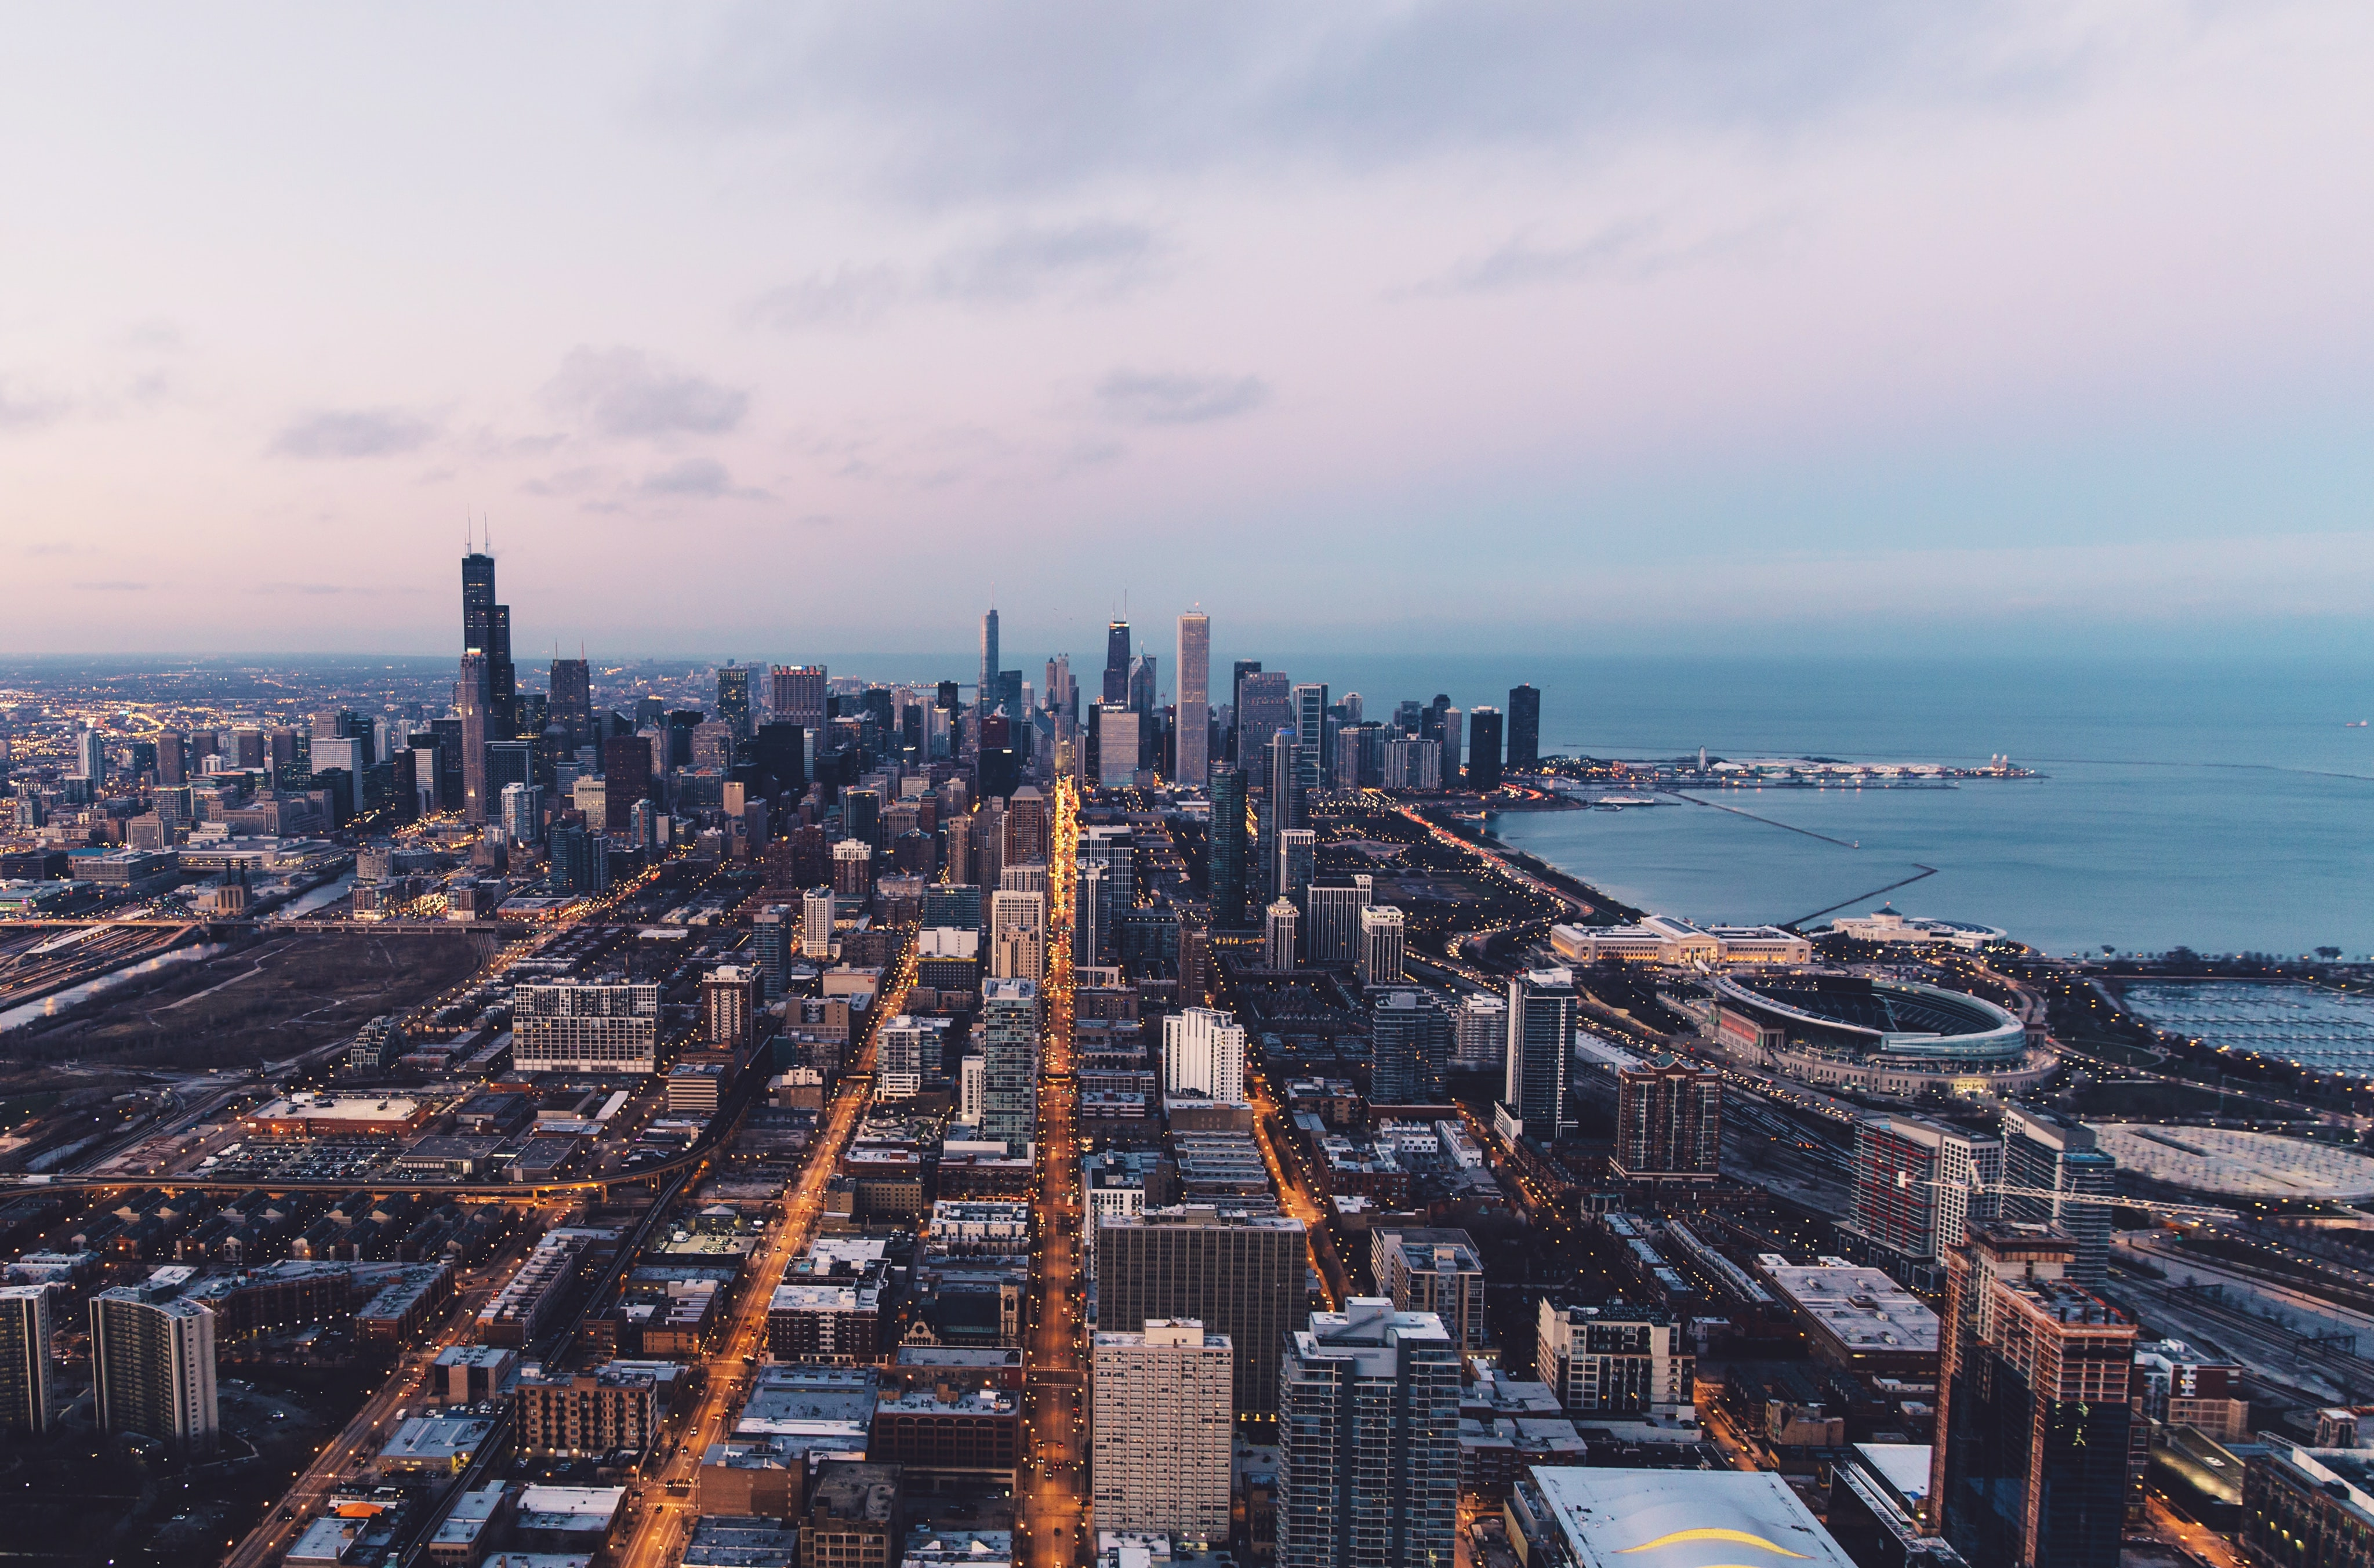 The skyline of Chicago with a view on Lake Michigan on an evening